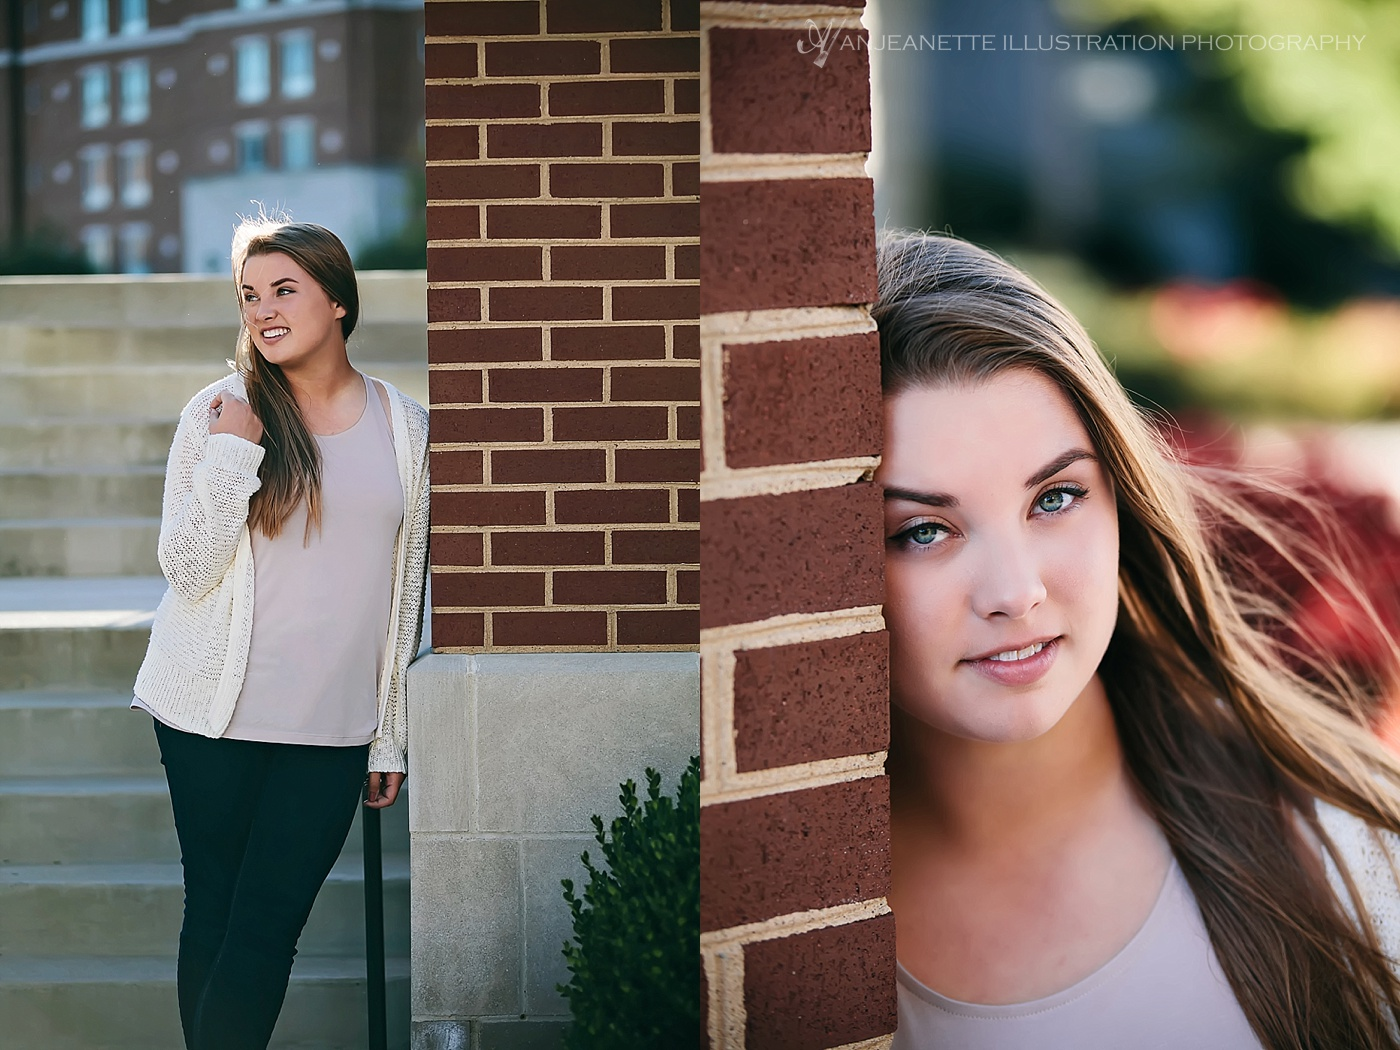 Senior Photos in Hendersonville Tn by Artistic Senior Picture Photographer Anjeanette Illustration Photography